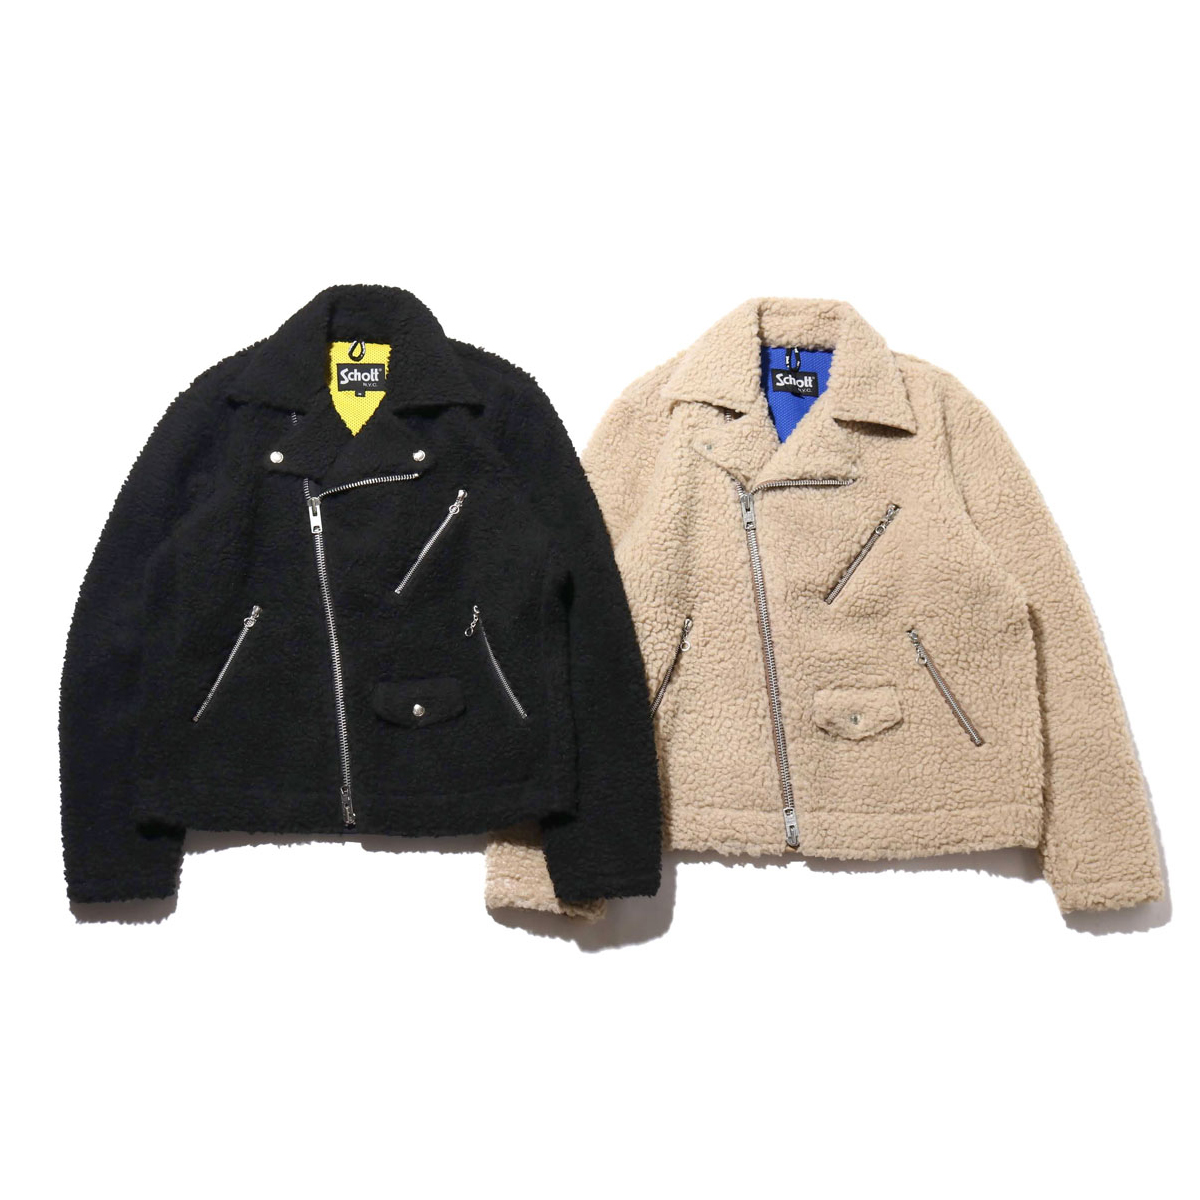 SCHOTT x ATMOS LAB FLEECE RIDERS JACKET